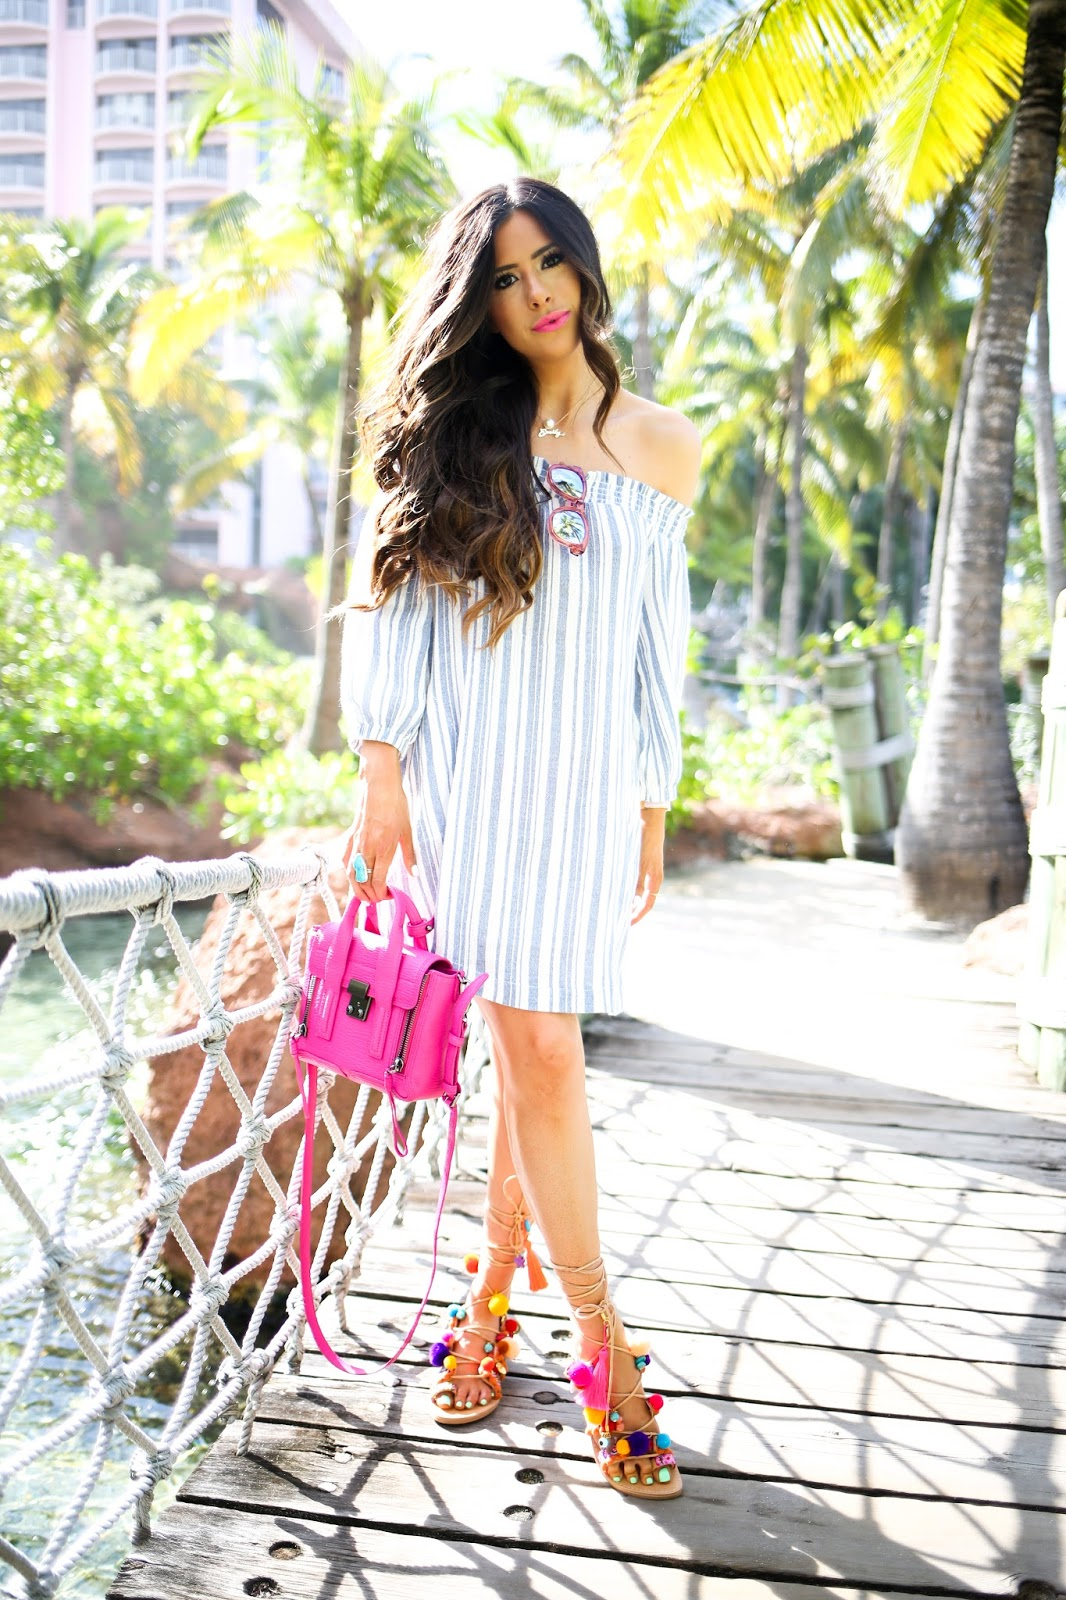 pink mini phillip lim, fuchsia phillip lim mini handbag, lush off the shoulder dress nordstrom, elina linardaski penny lane sandals, gladiator sandals with charms and poms, sandals with poms that tie around ankle, atlantis bahamas fashion blog, emily gemma blog, the sweetest thing blog, how to style a pink handbag during winter, what to do in atlantis bahamas, where to stay in the bahamas, what to wear on spring break, outfit ideas for beach trips, odysssey turquoise ring, pink cross body handbag, nordstrom affordable dresses for spring, brunette bayalage hair, bellami balayage hair extensions